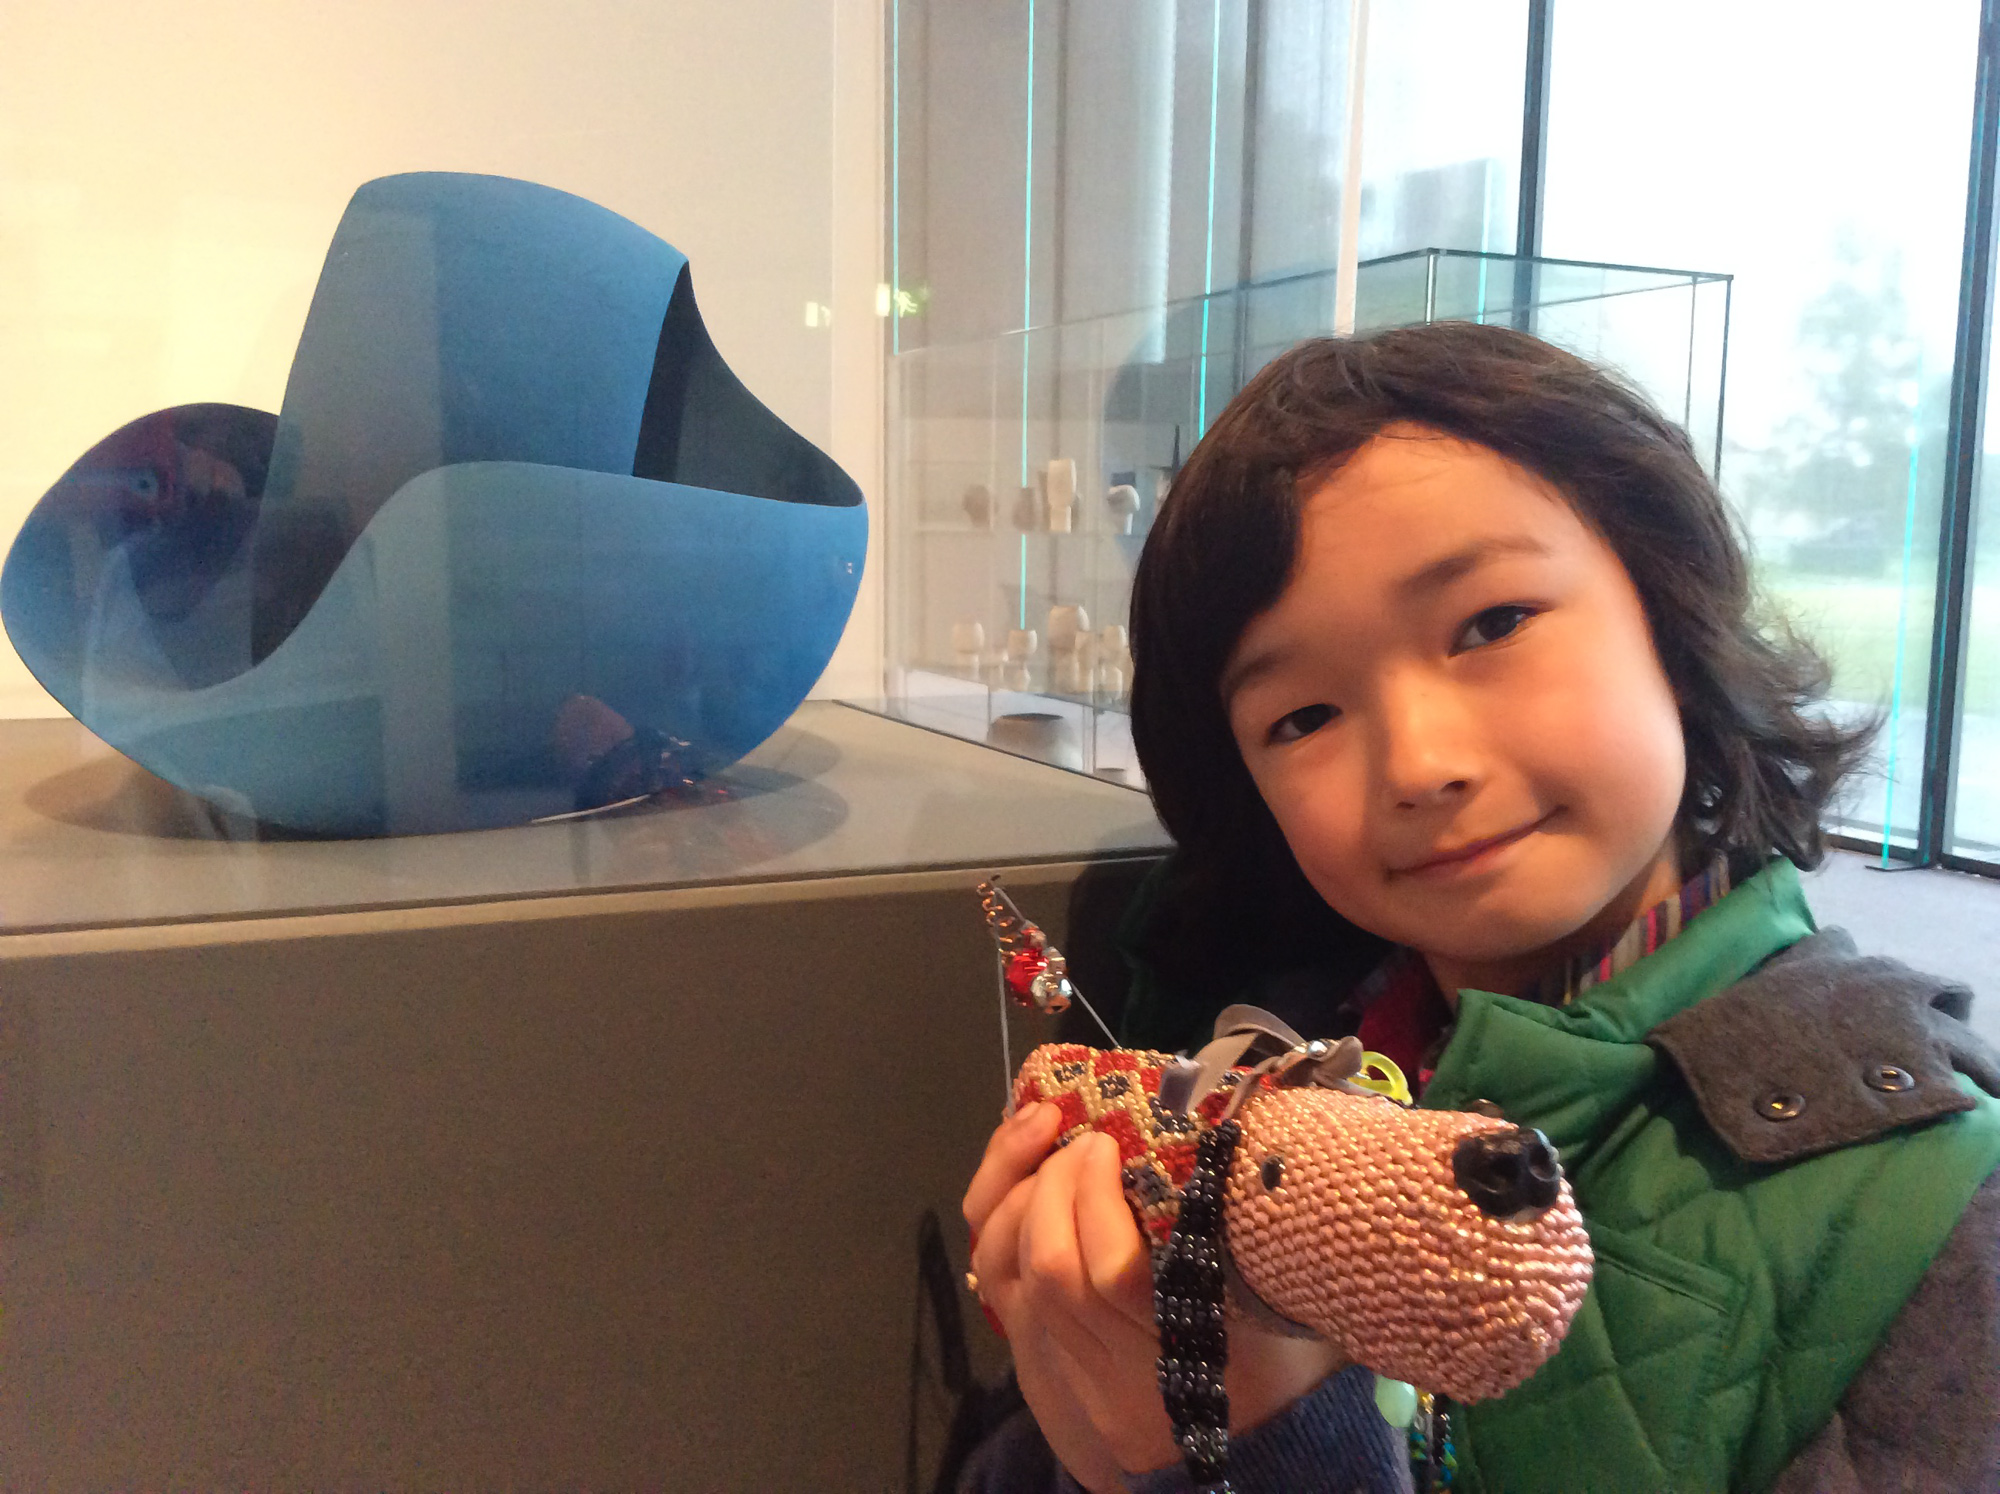 He found this abstract blue sculpture interesting and wants to find out more